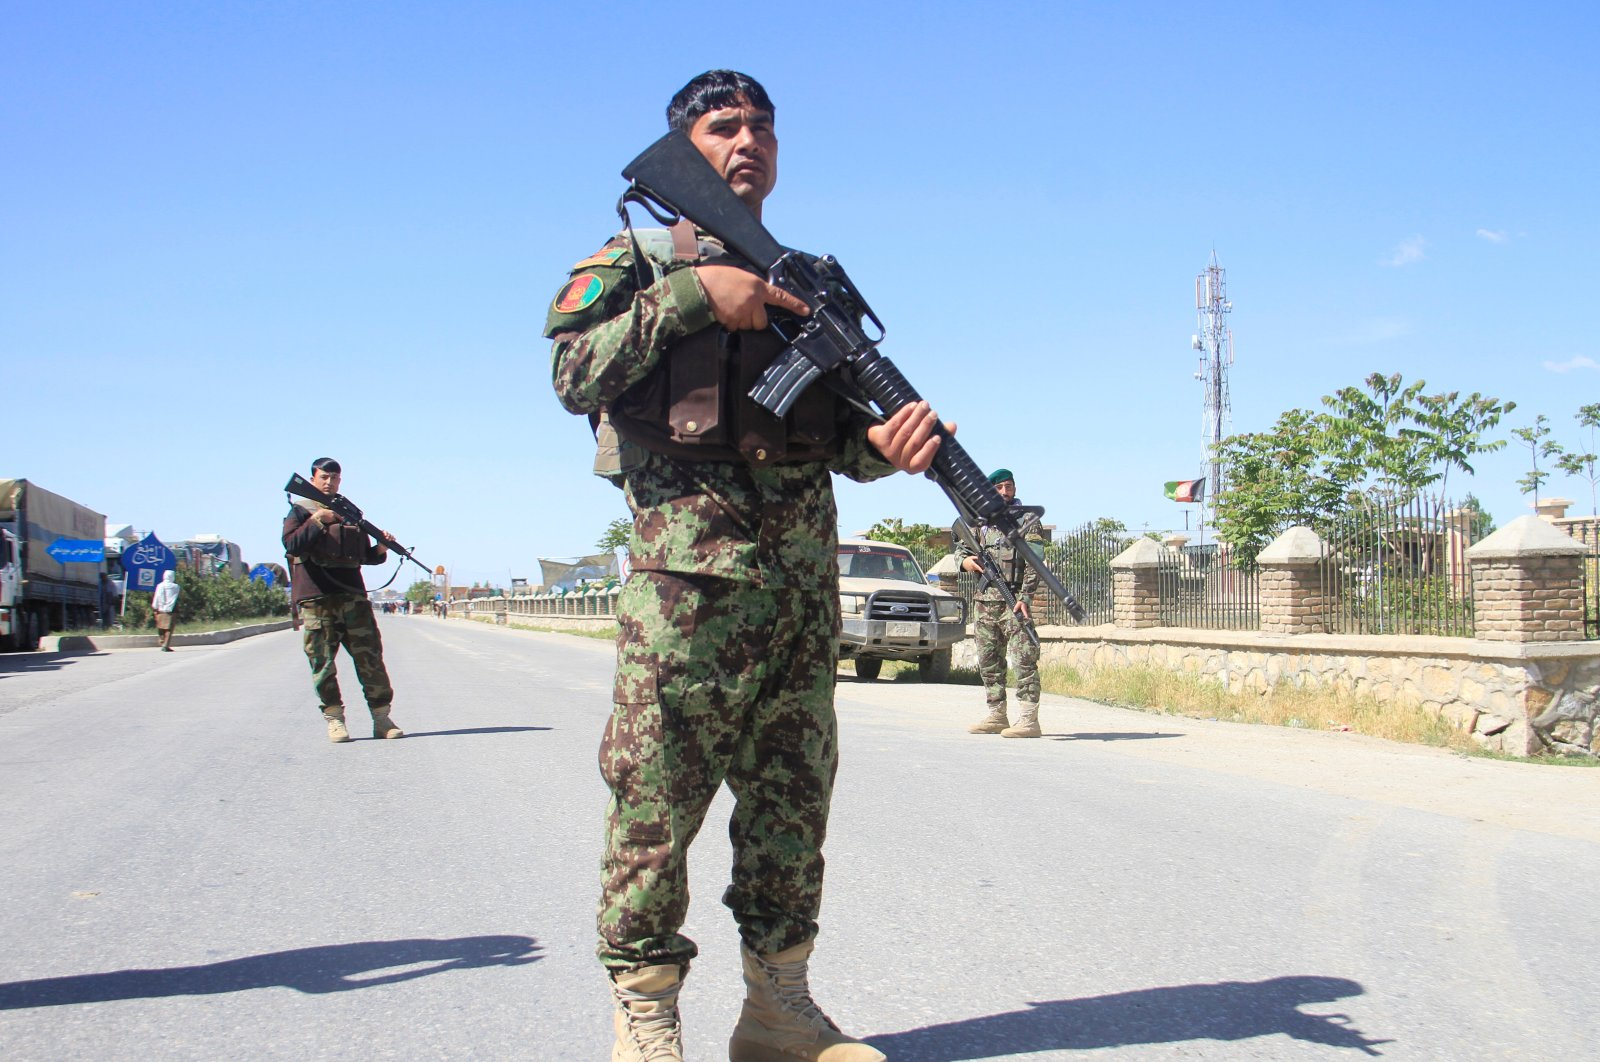 Afghan National Army officers stand guard at the site of a blast in Ghazni province, Afghanistan May 18, 2020. (Reuters Photo)